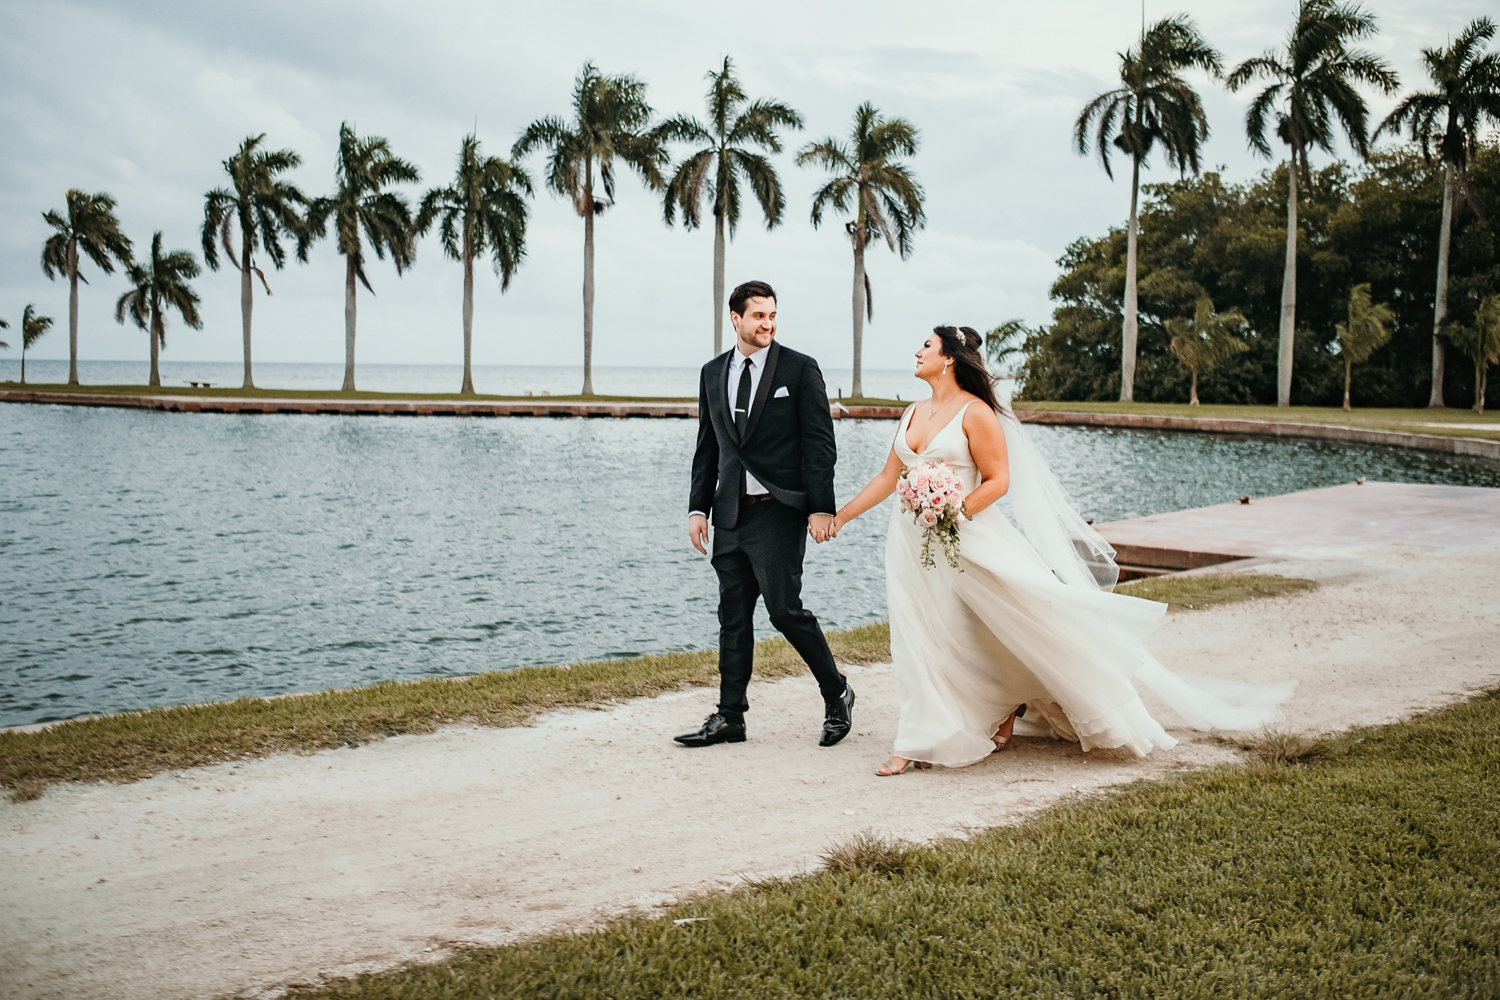 bride and groom walking back palm trees in background